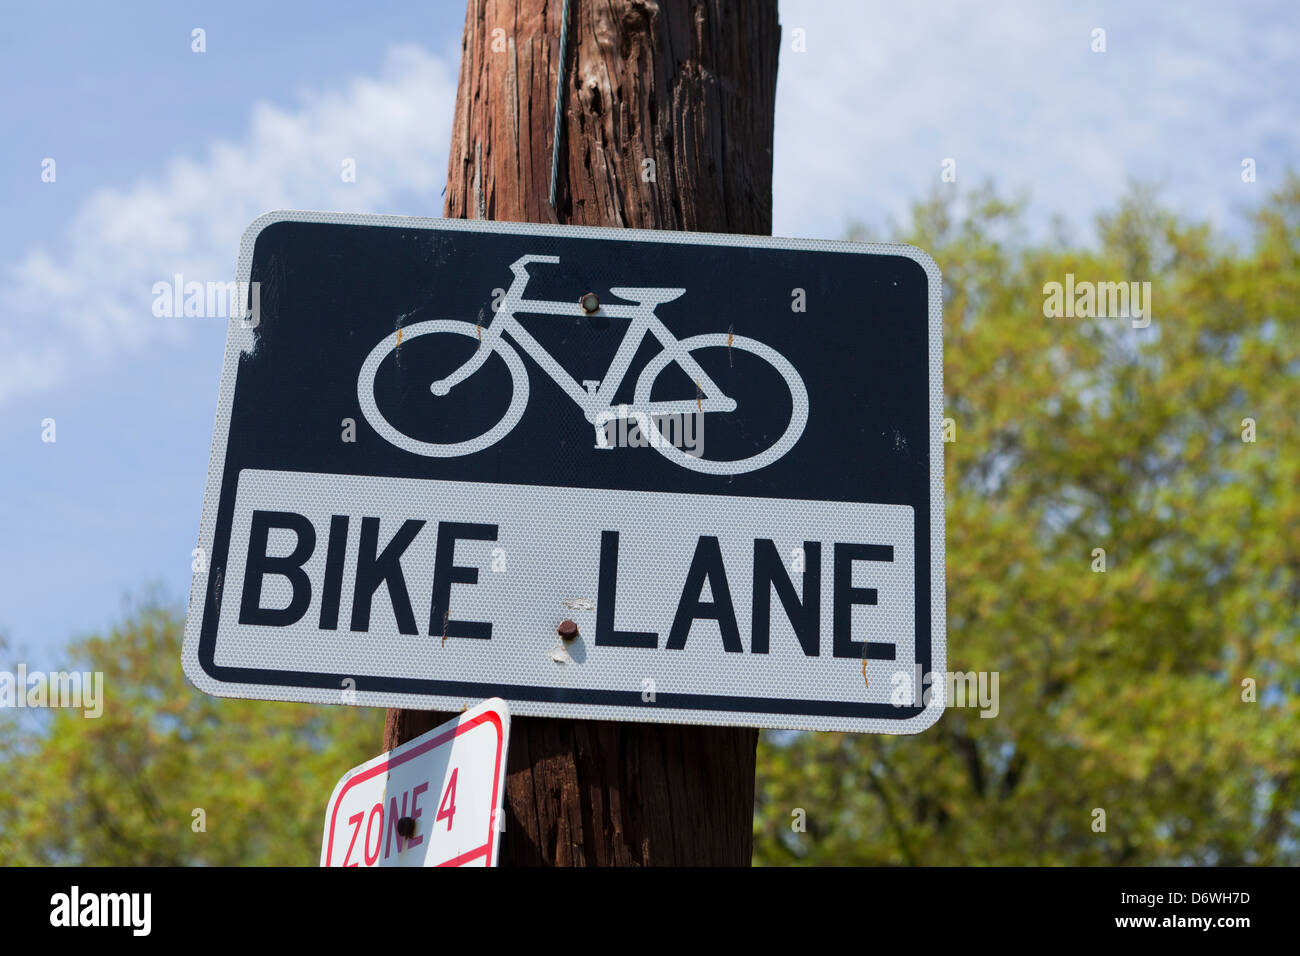 Bike Lane sign - USA - Stock Image